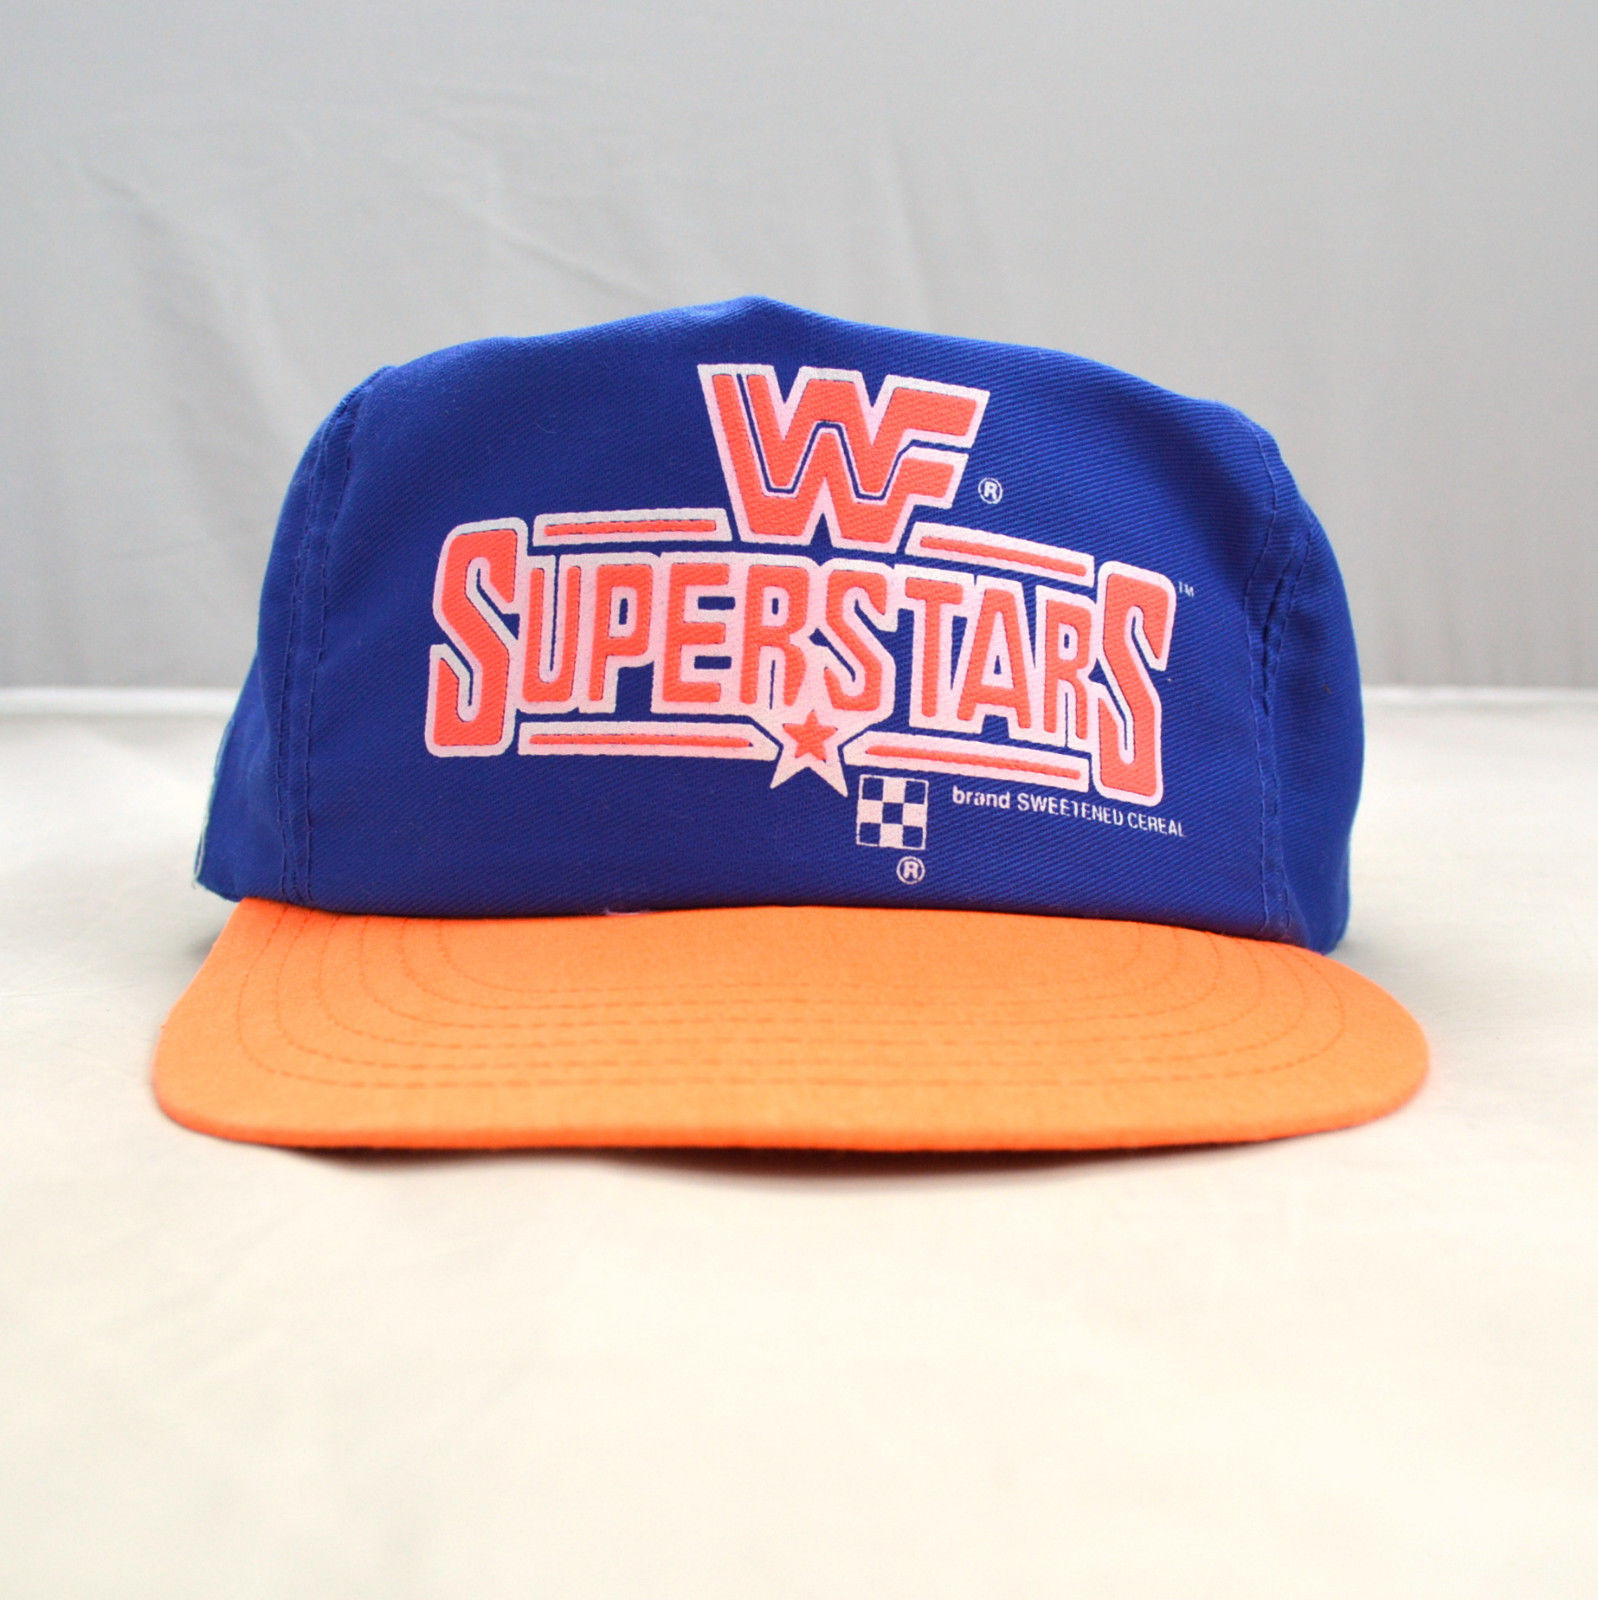 WWF Superstars Cereal cap hat 1